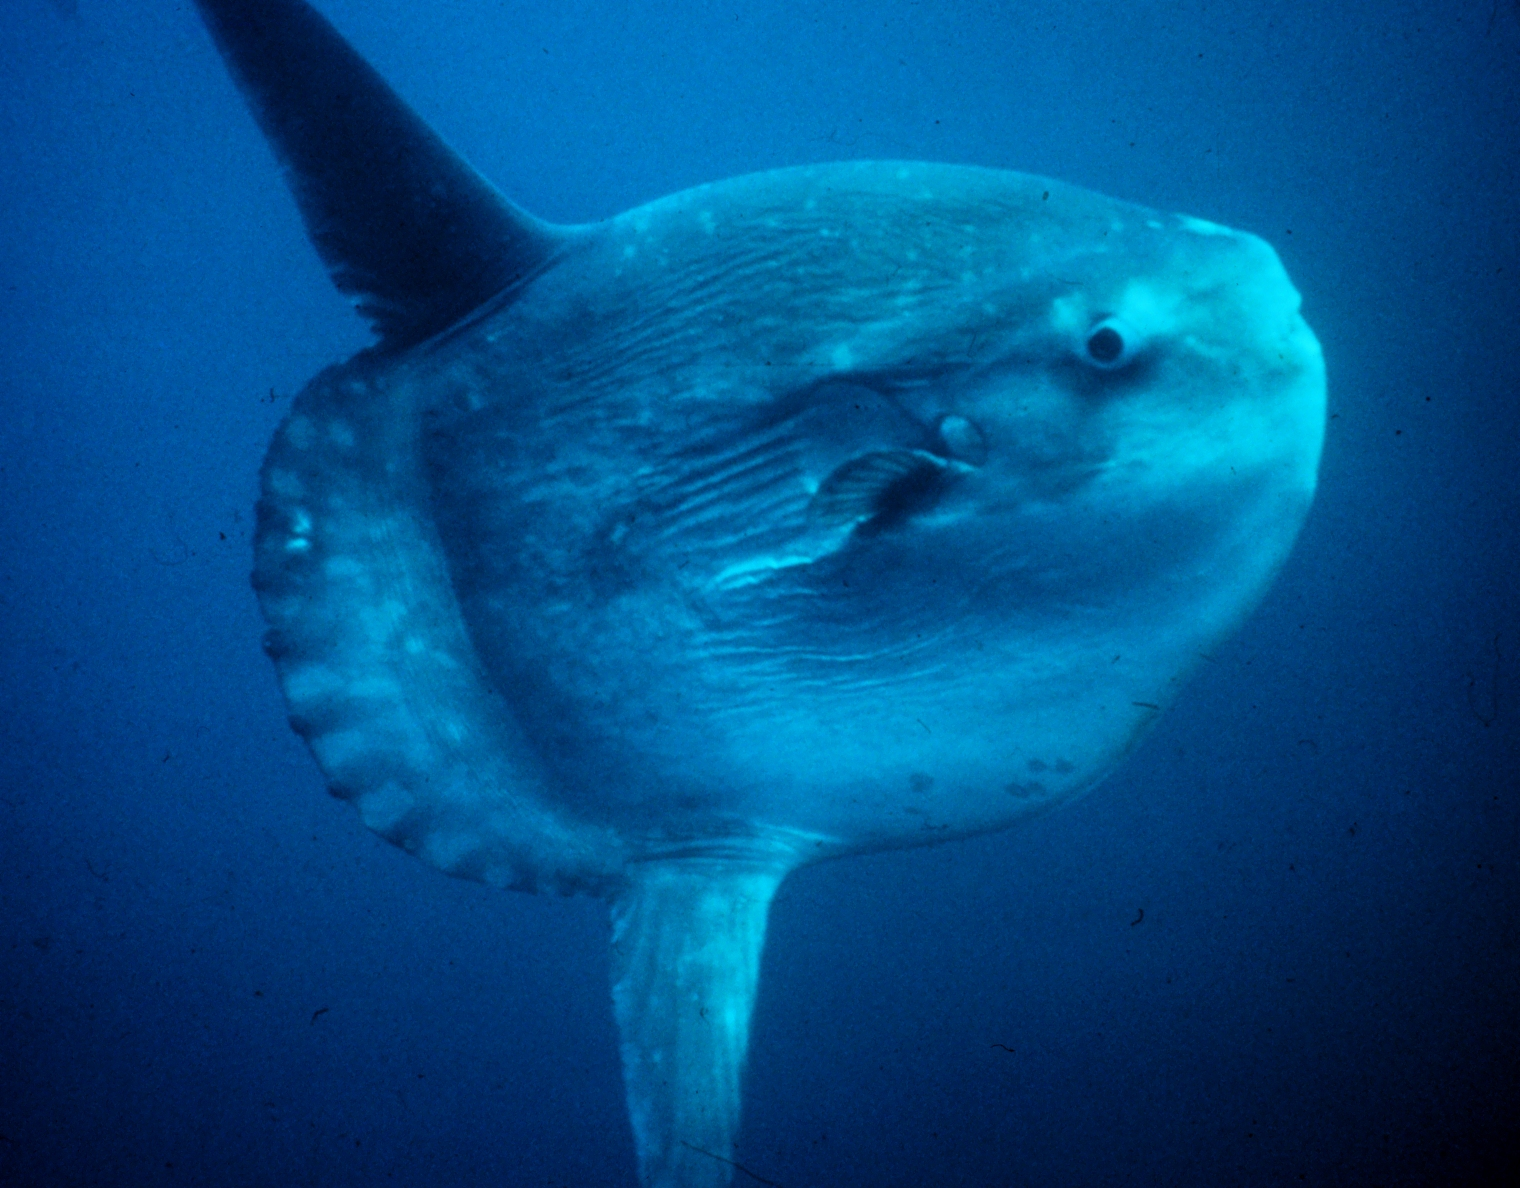 https://upload.wikimedia.org/wikipedia/commons/9/98/Mola_mola.jpg